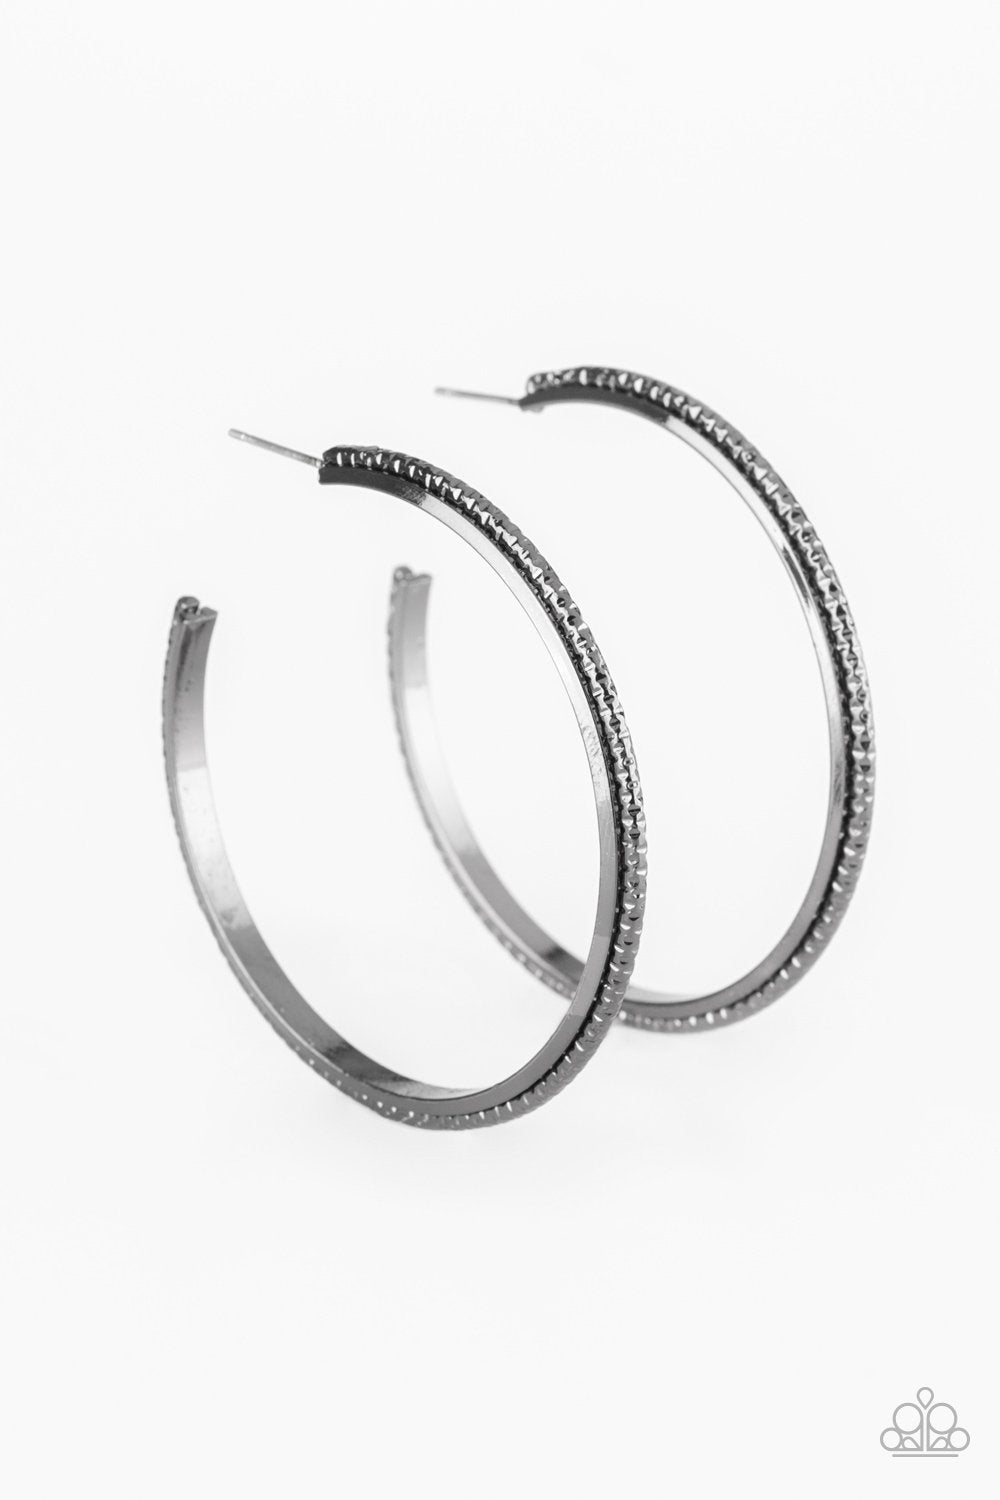 Girl Gang - Paparazzi Black Hoop Earring - Be Adored Jewelry